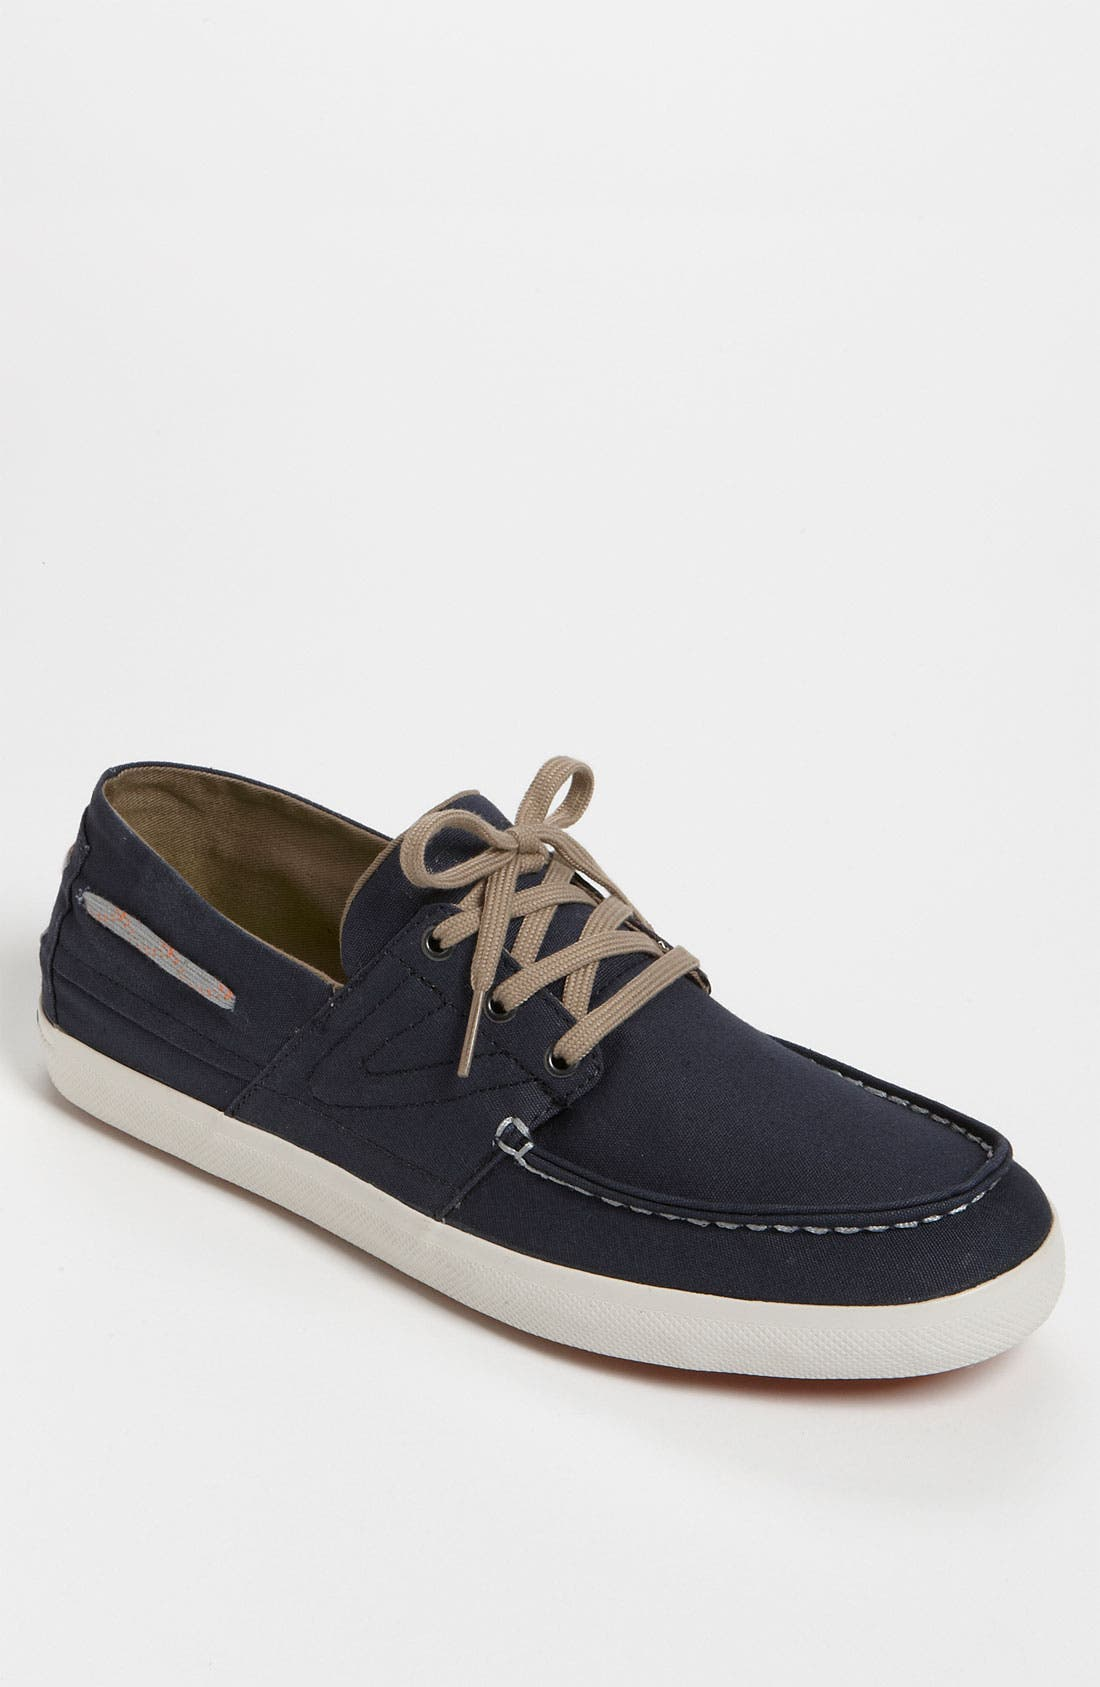 Alternate Image 1 Selected - Tretorn 'Otto' Boat Shoe Sneaker